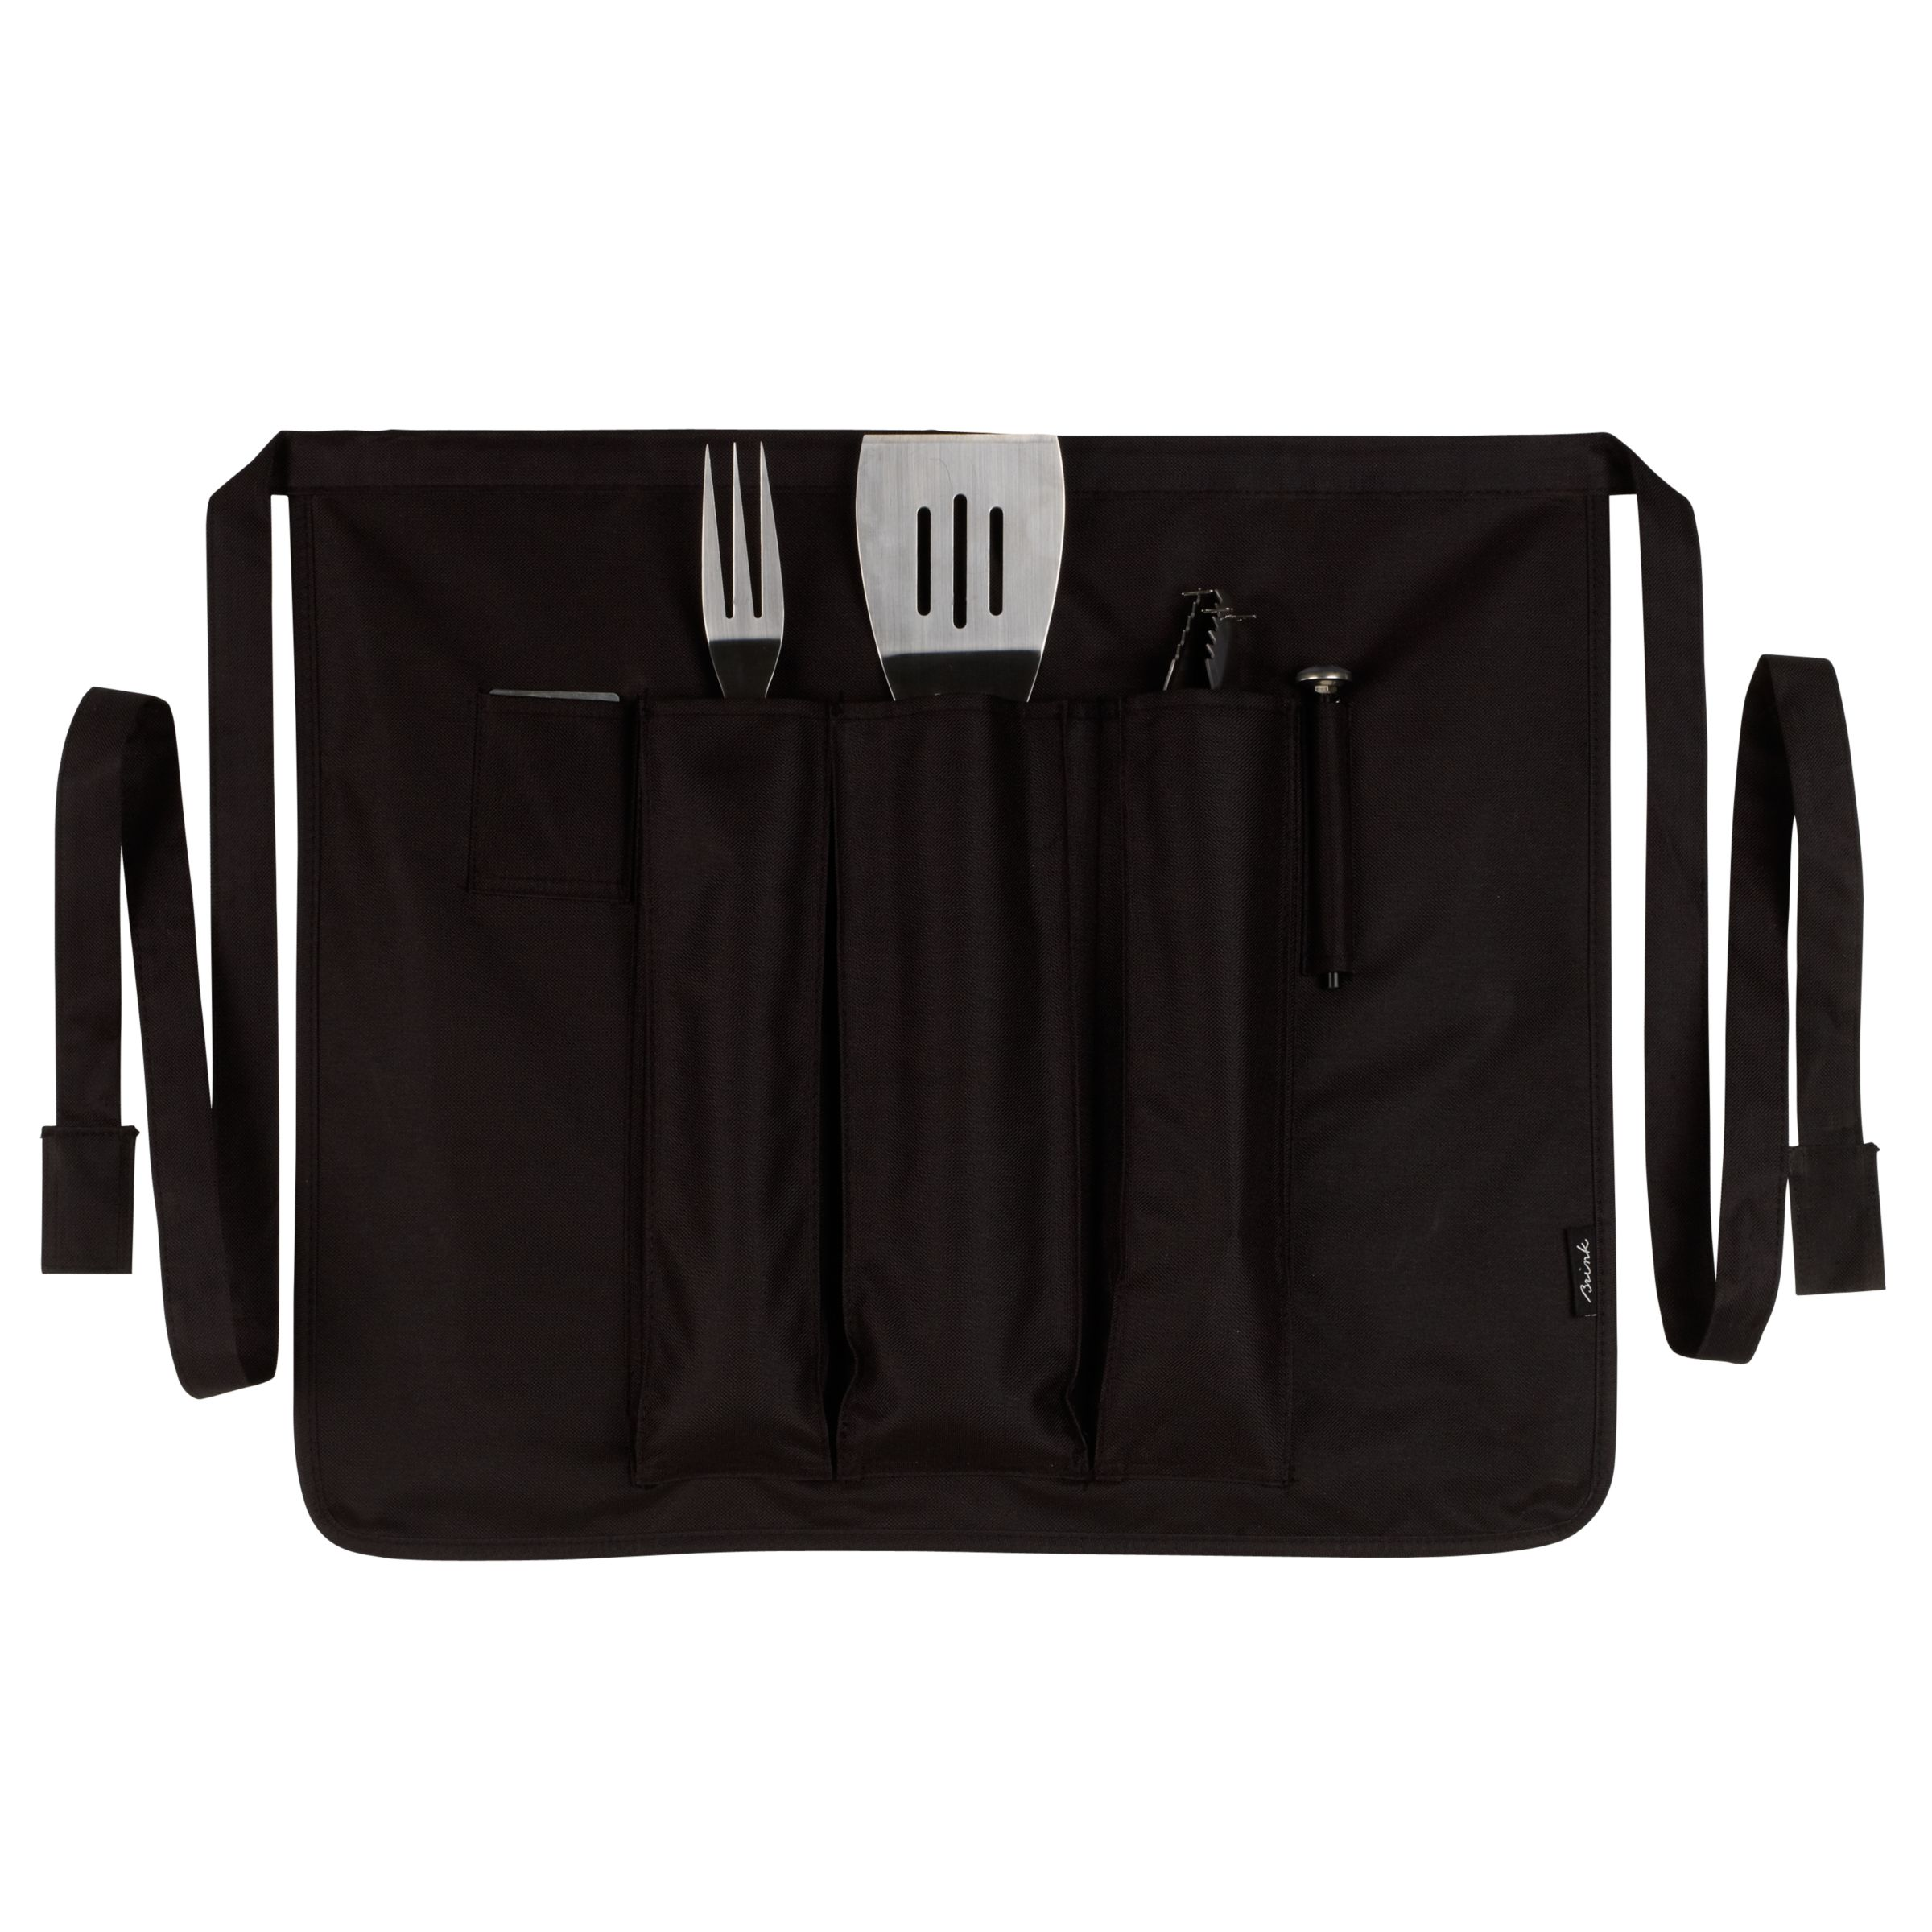 John Lewis Barbecue Apron with Utensils